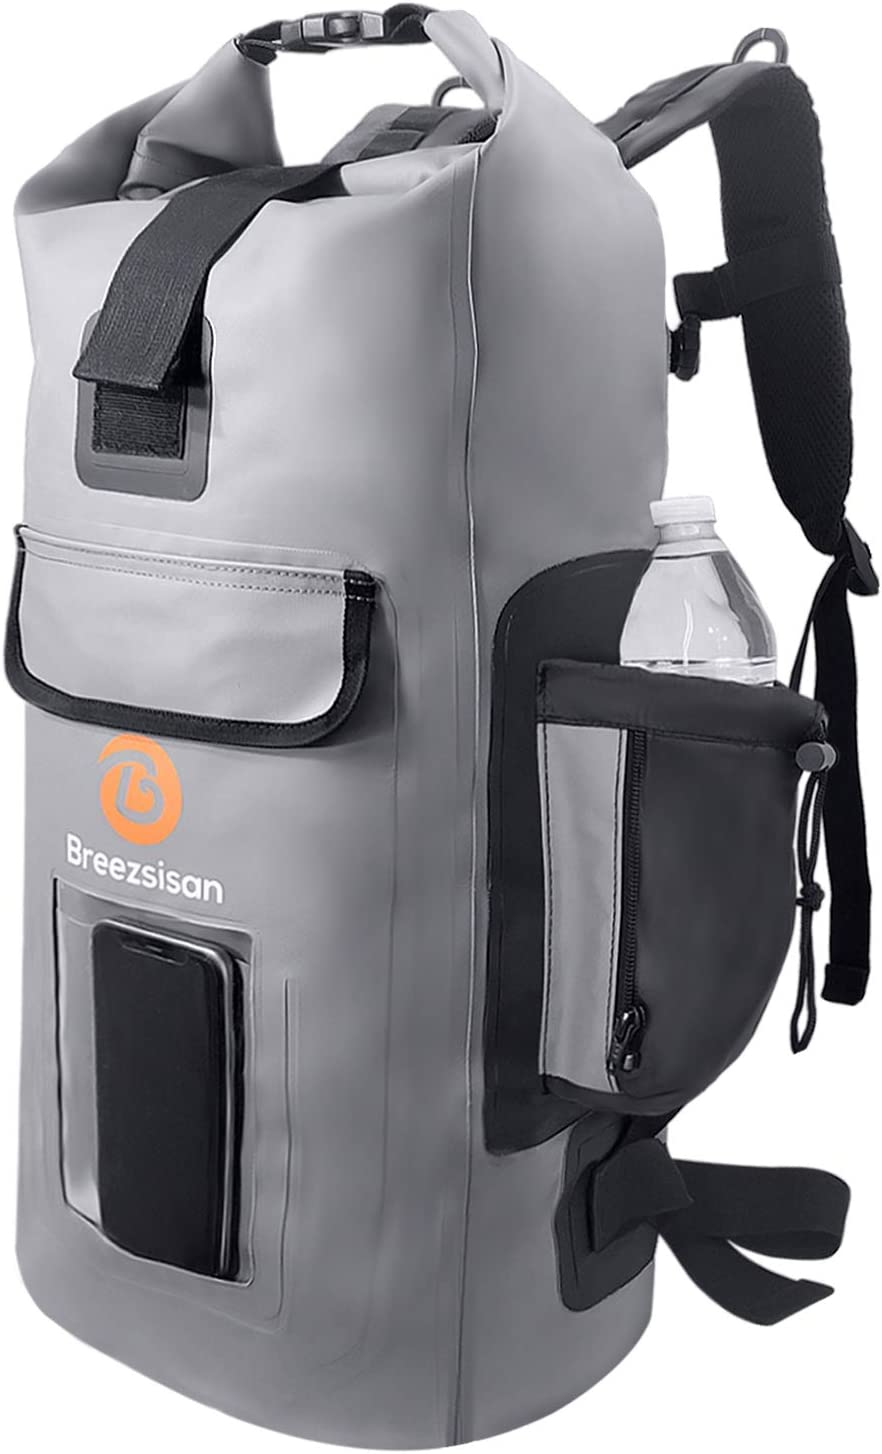 Breezsisan Dry Bags Backpack Waterproof 27L with Front Zippered Pocket - Dry Bag Outdoor Products for: Kayaking, Beach, Rafting, Boating, Camping Fishing Paddle Board Jet Ski